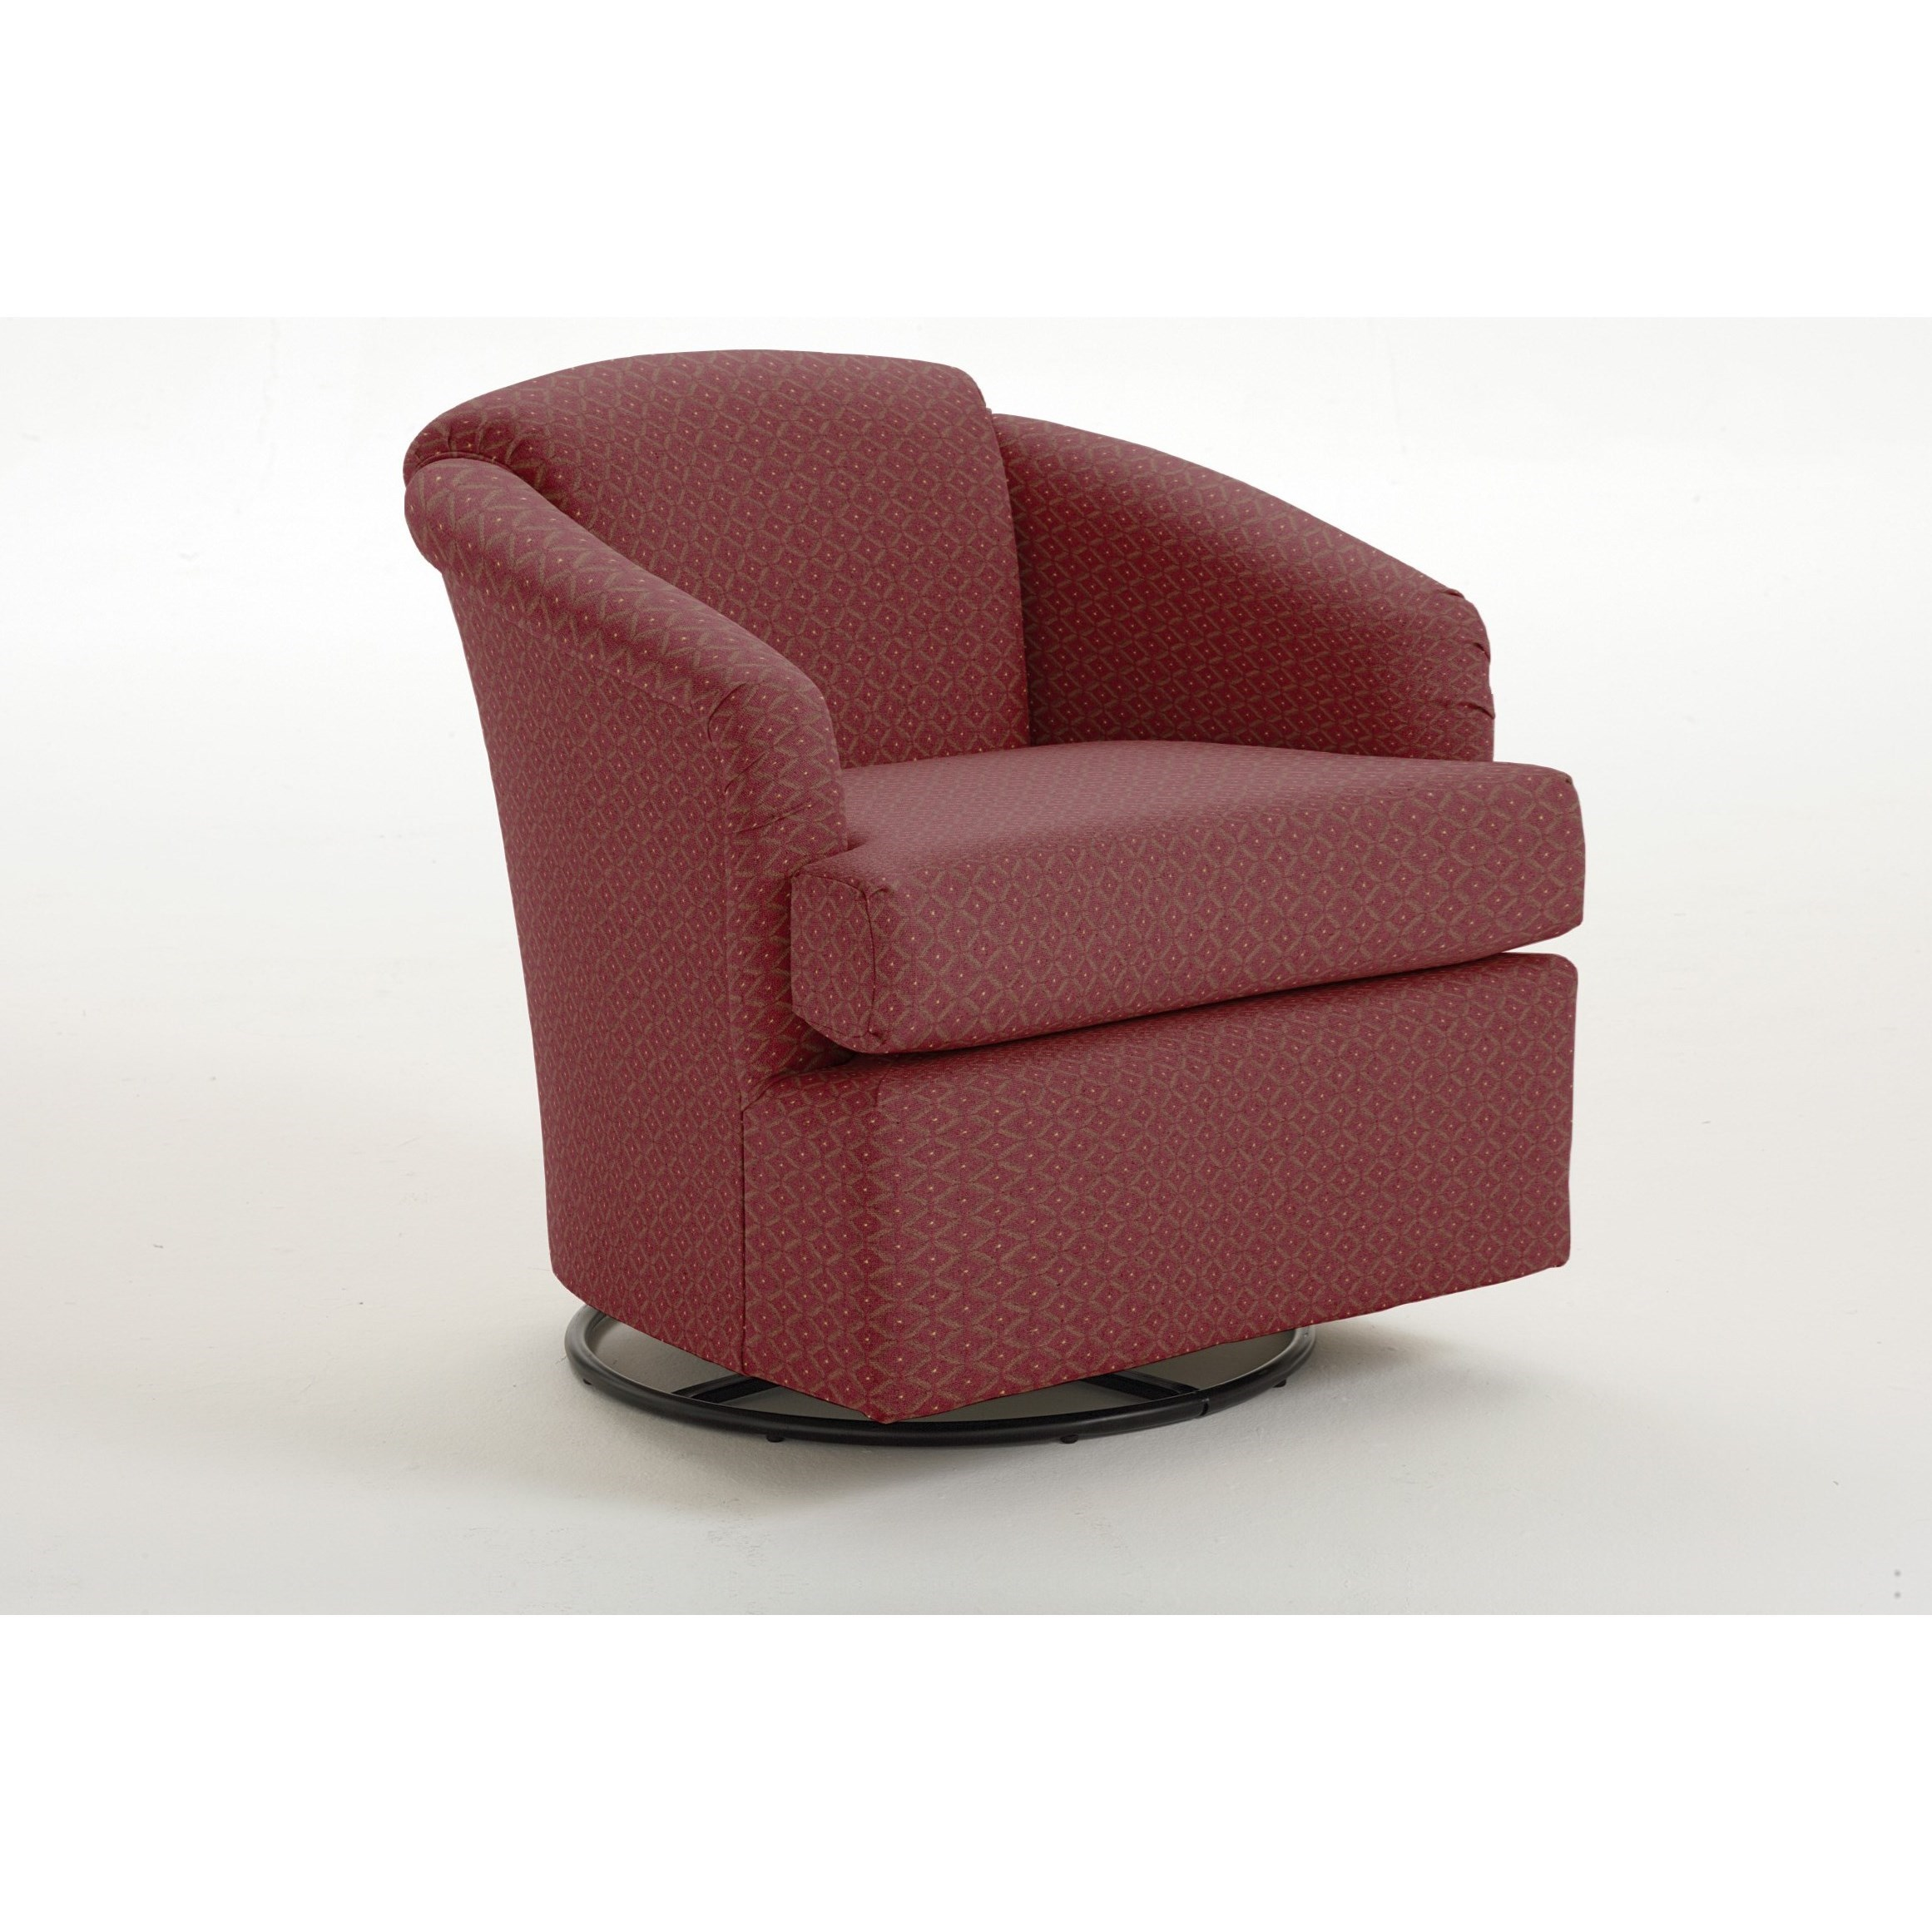 256 Cass Swivel Glider by Best Home Furnishings at Walker's Furniture